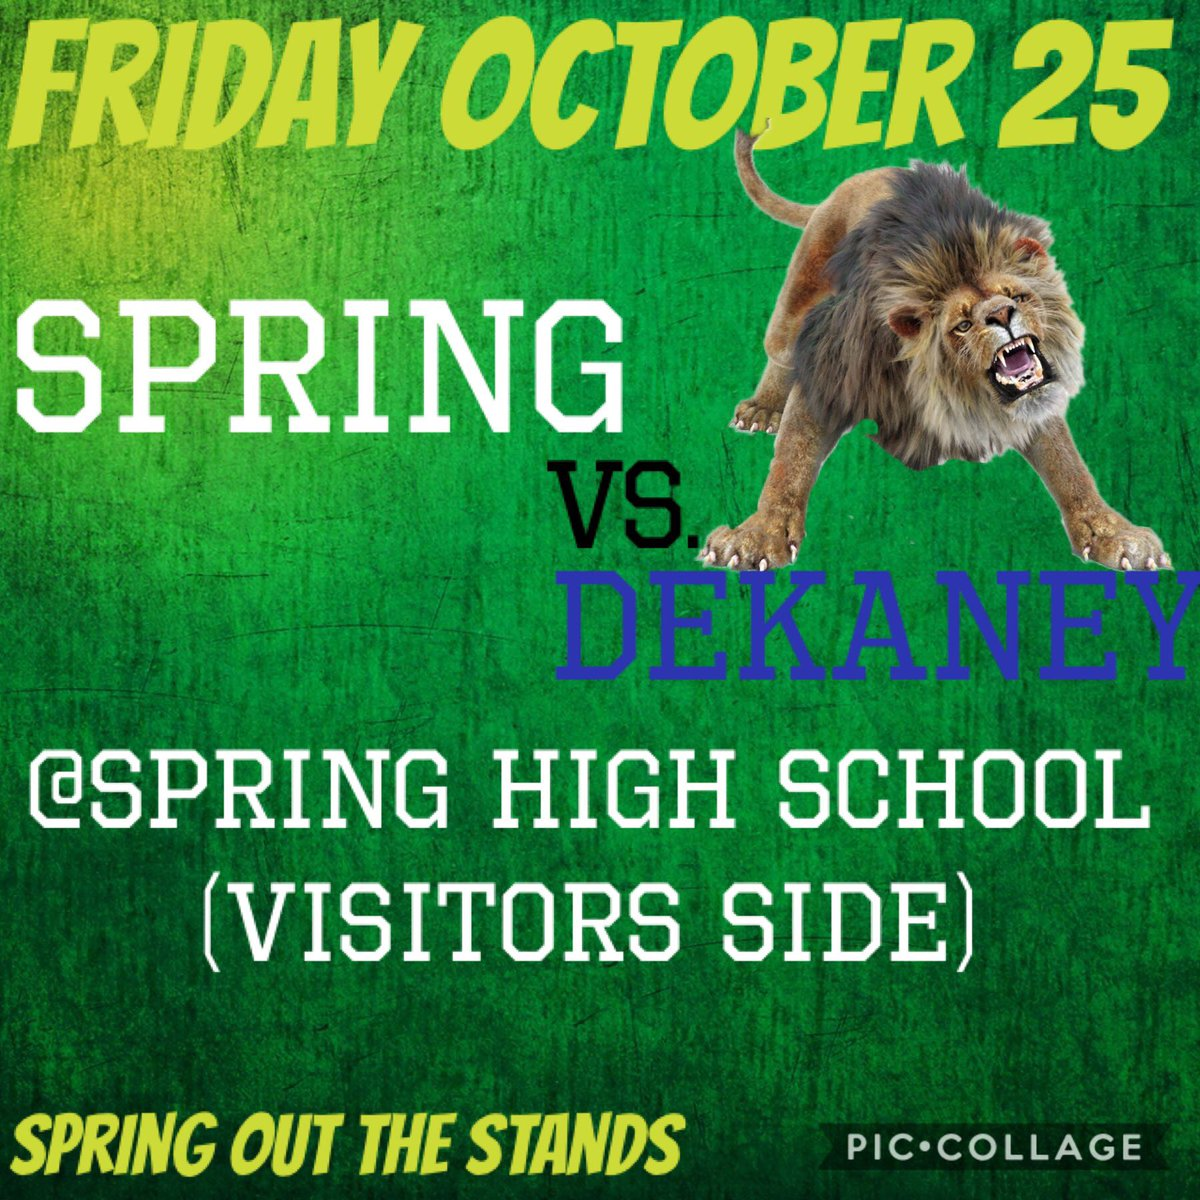 Attention Spring Lions lets spring out the stands tonight for our football boys!! We will be on the visitor side tonight 💚#wearespring #mbybob https://t.co/znqHrwC686